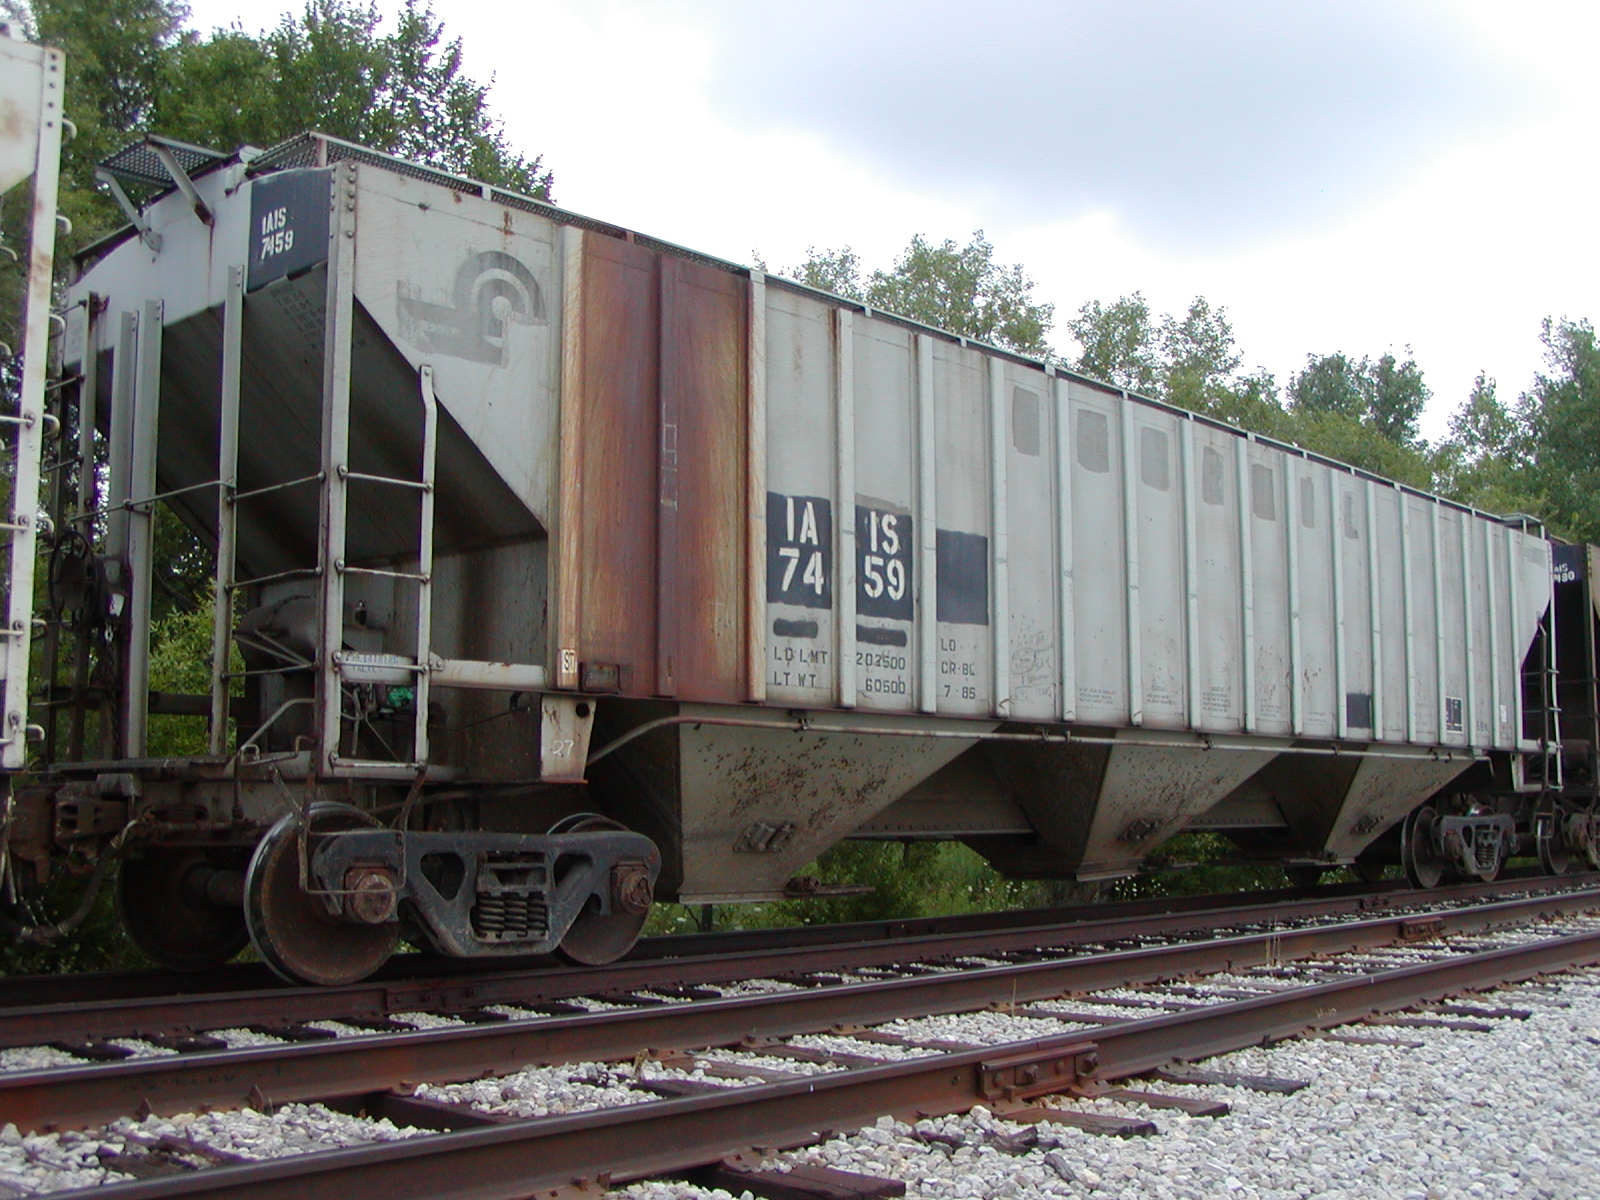 Hillis Siding, IA - 02-Aug-2007